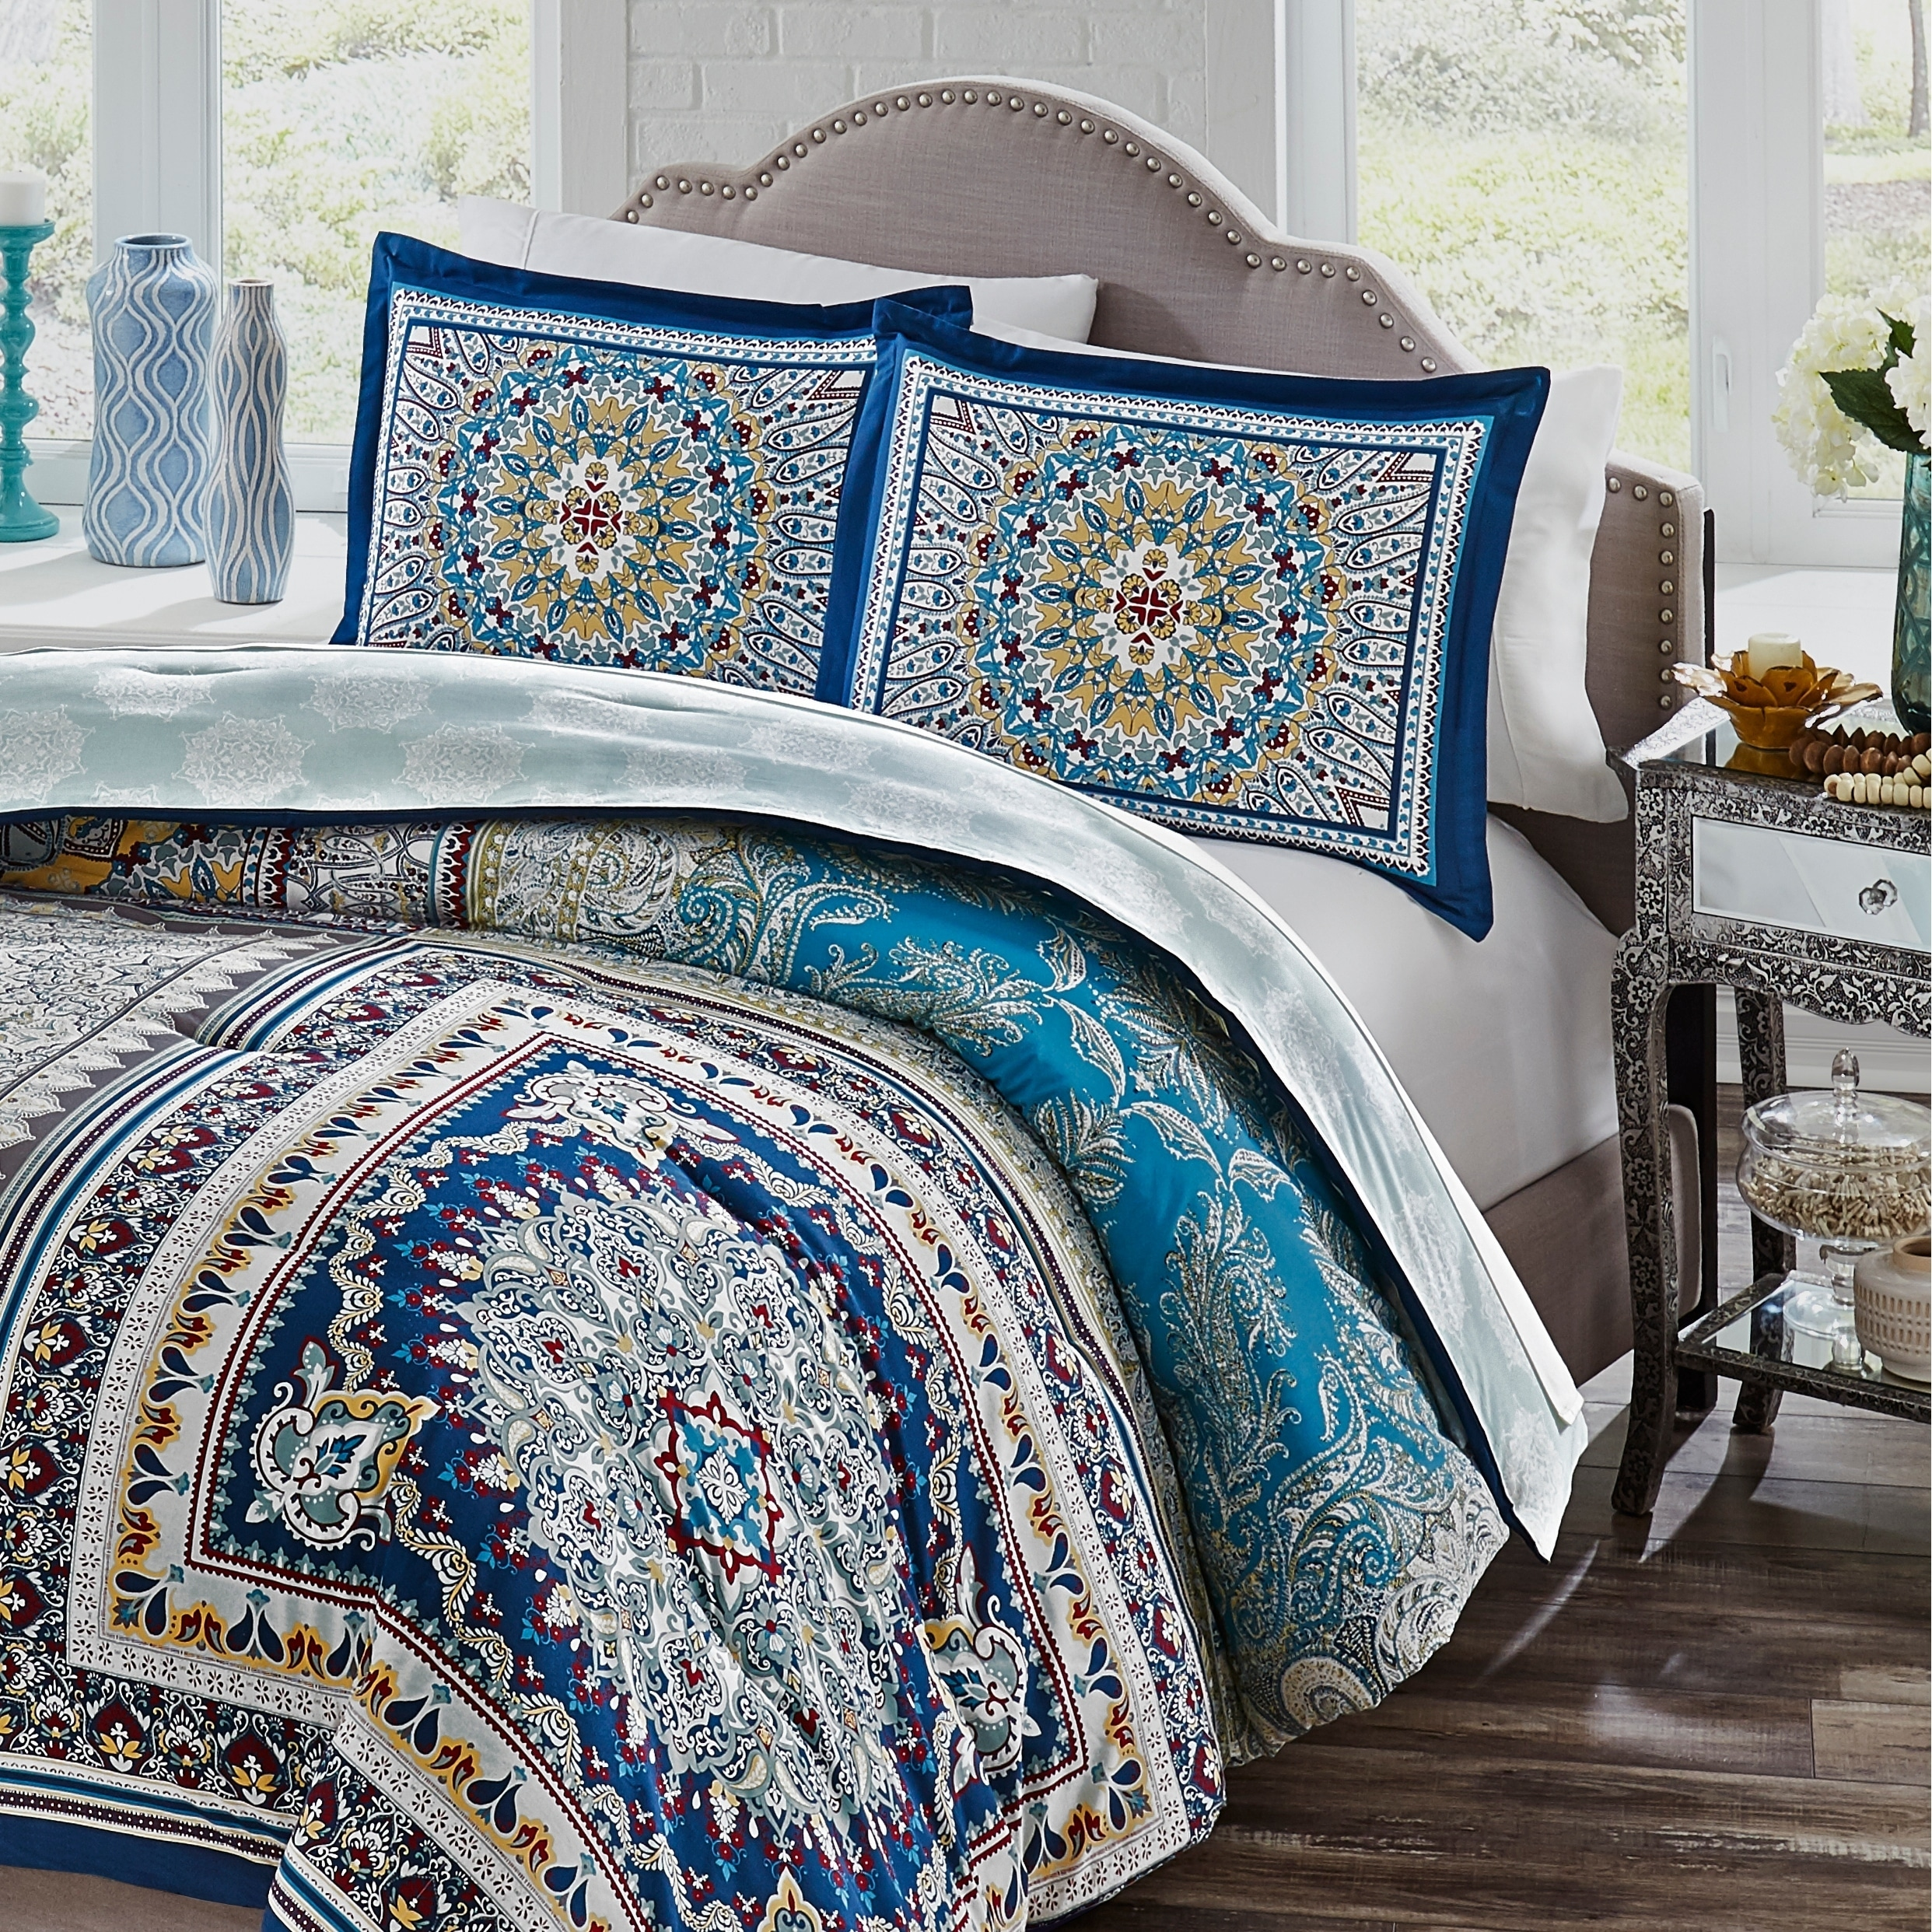 textileboho auvoau comforters decor bedding home beachfront sets comforter style and bohemian boho